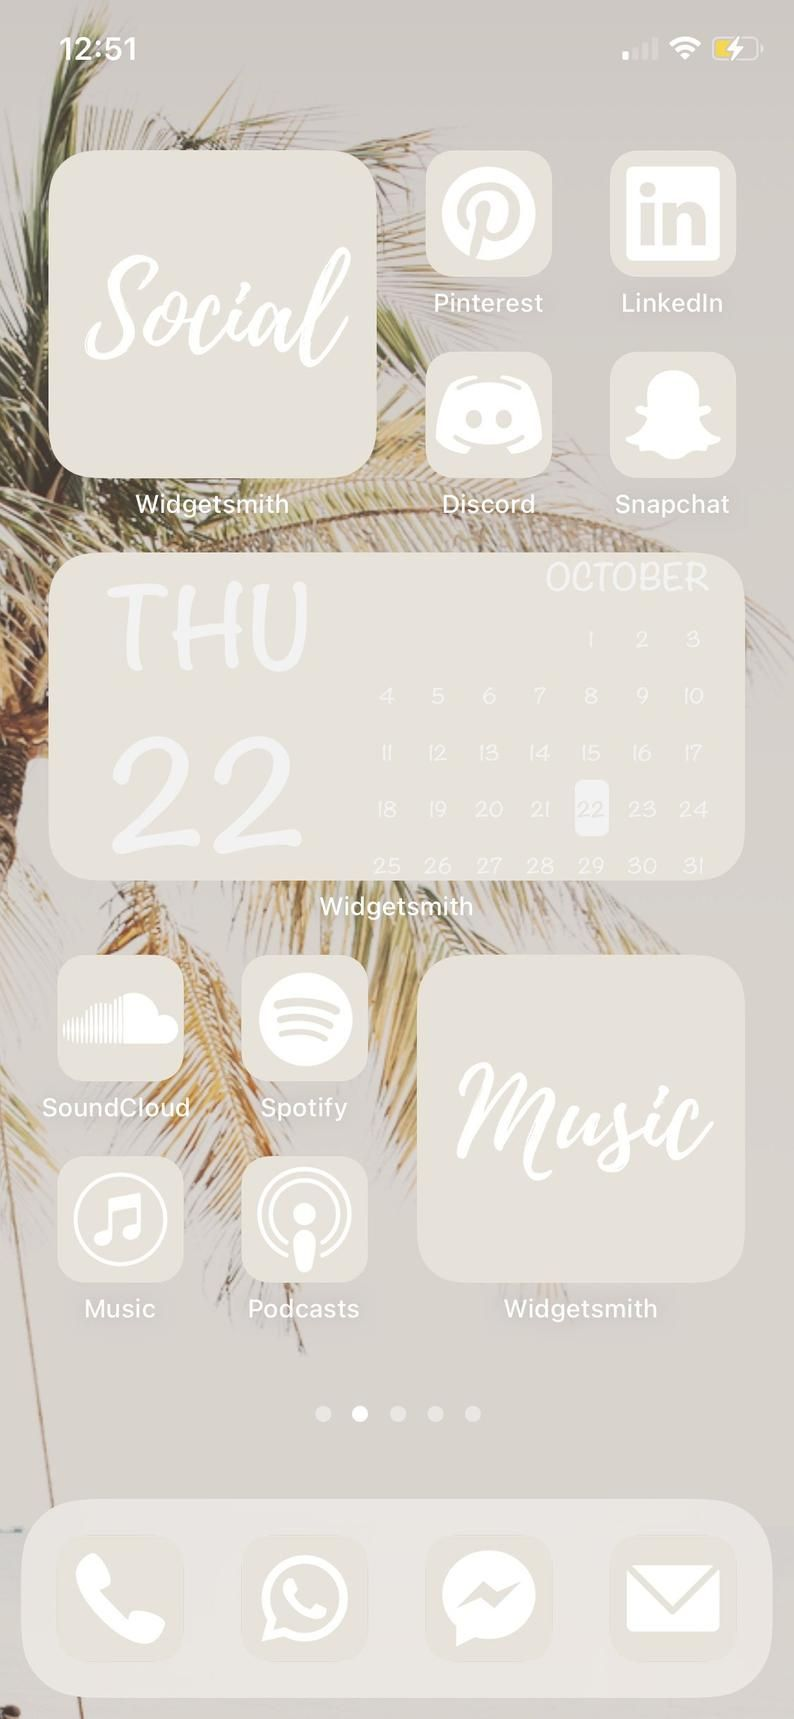 à couper le Souffle  Mot-Clé 350 Pack Cream Beige app icons for customizing home screen in   Etsy